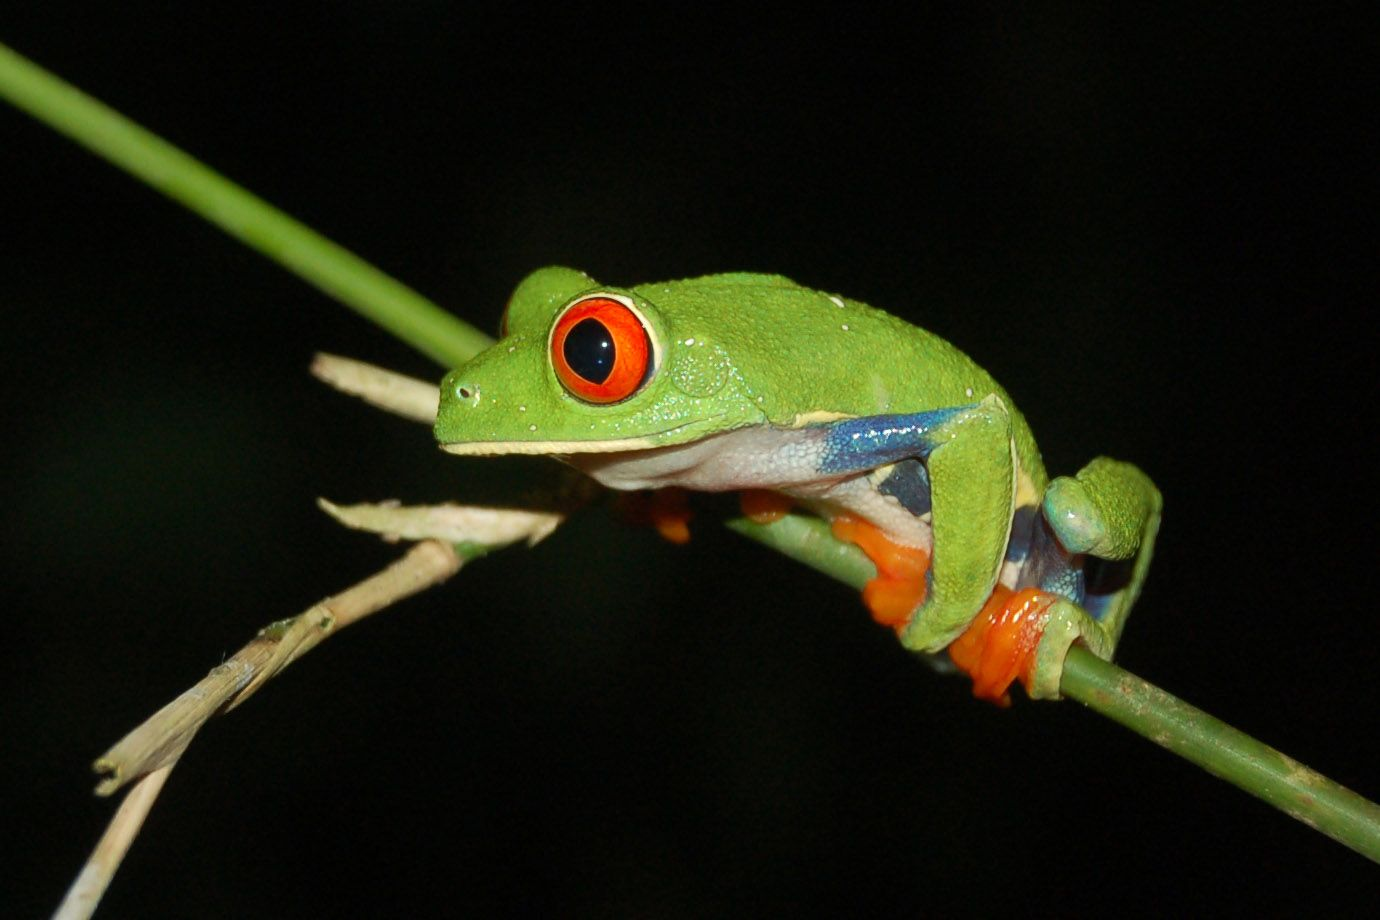 The Red-eyed Treefrog is perfectly adapted for climbing in trees.